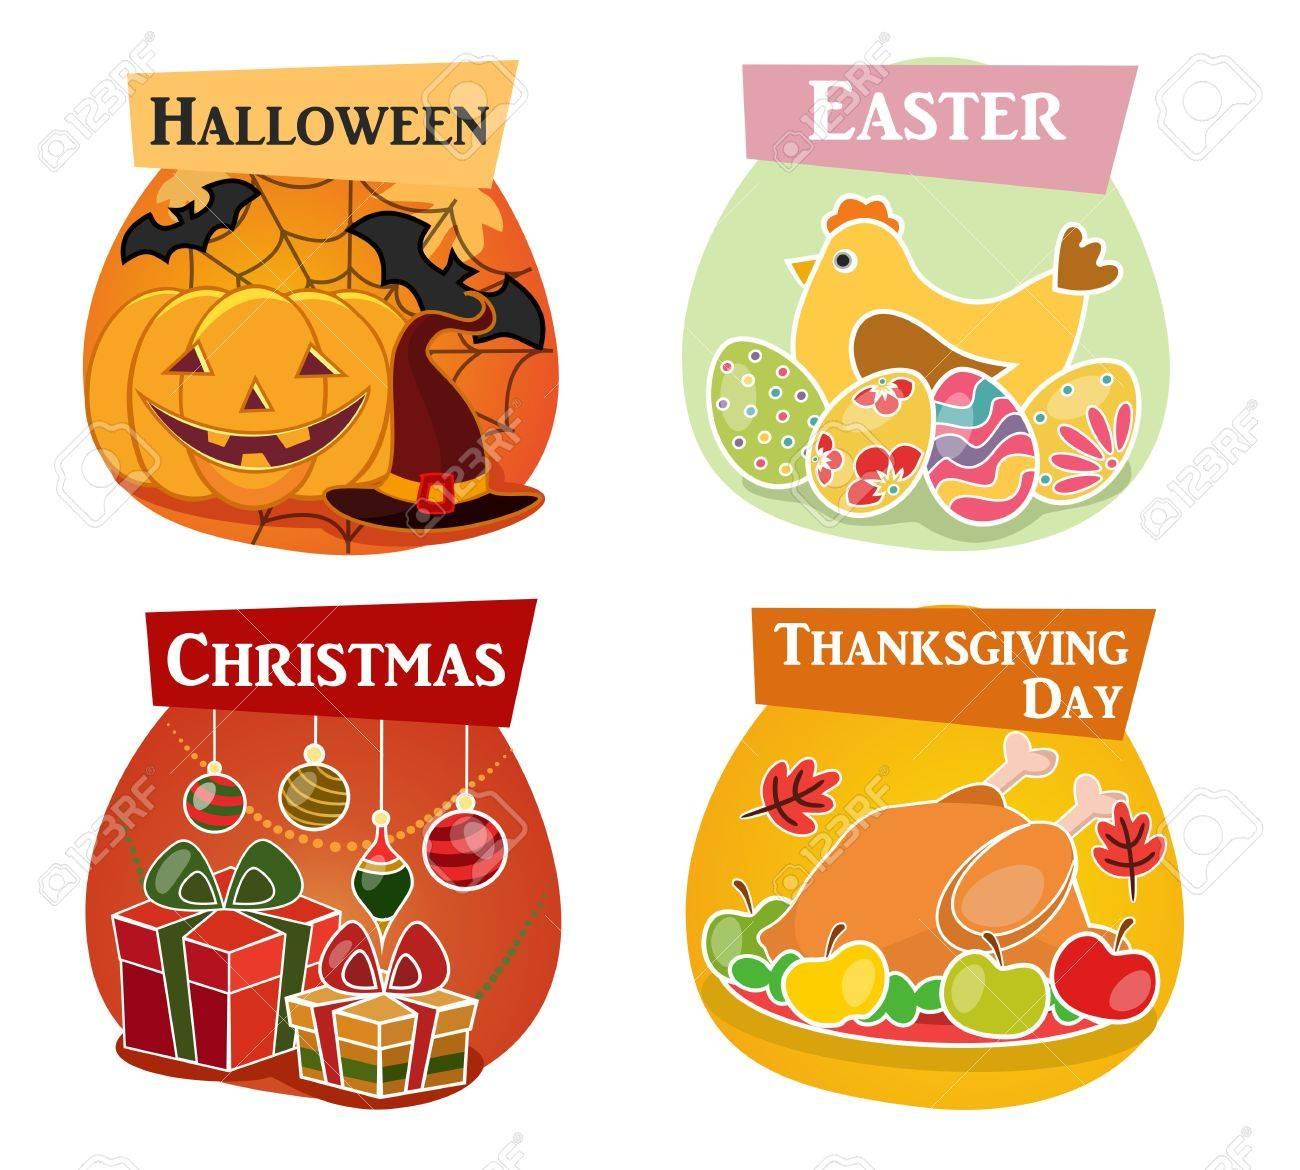 Halloween Thanksgiving Christmas Clipart.Thanksgiving Day Easter Halloween Christmas Flat Icons